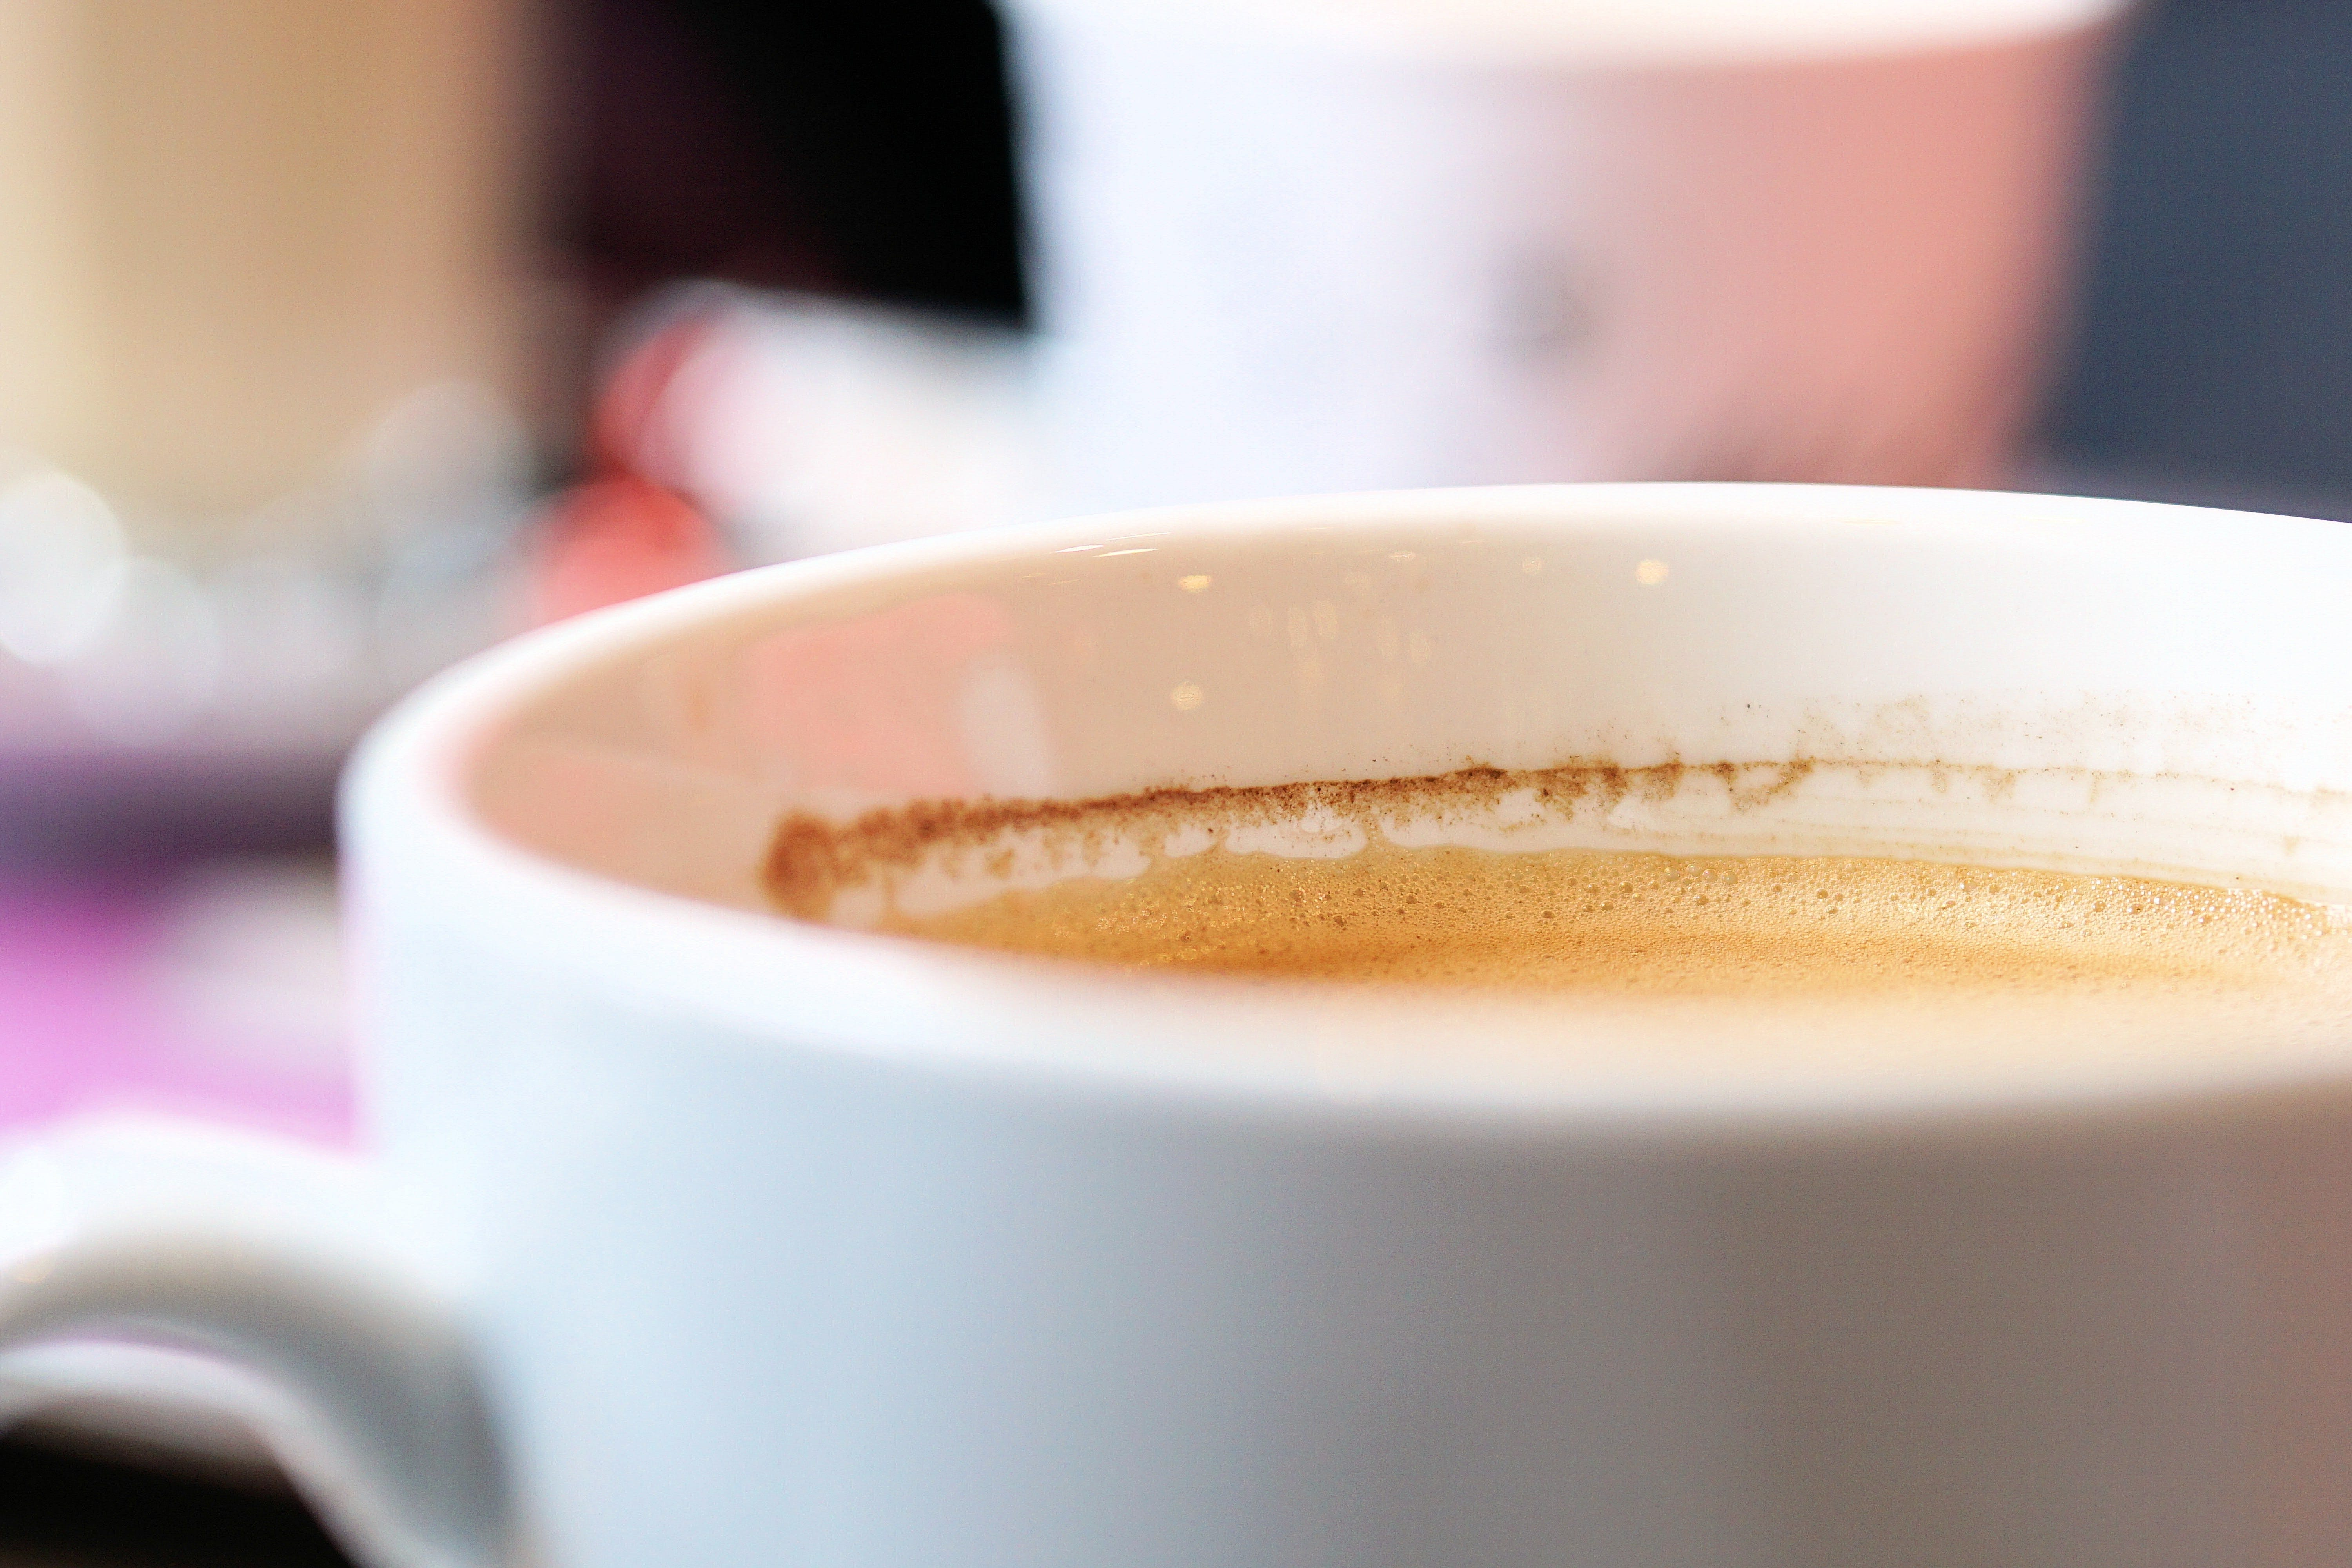 Closeup Photography of Cup Filled With Coffee